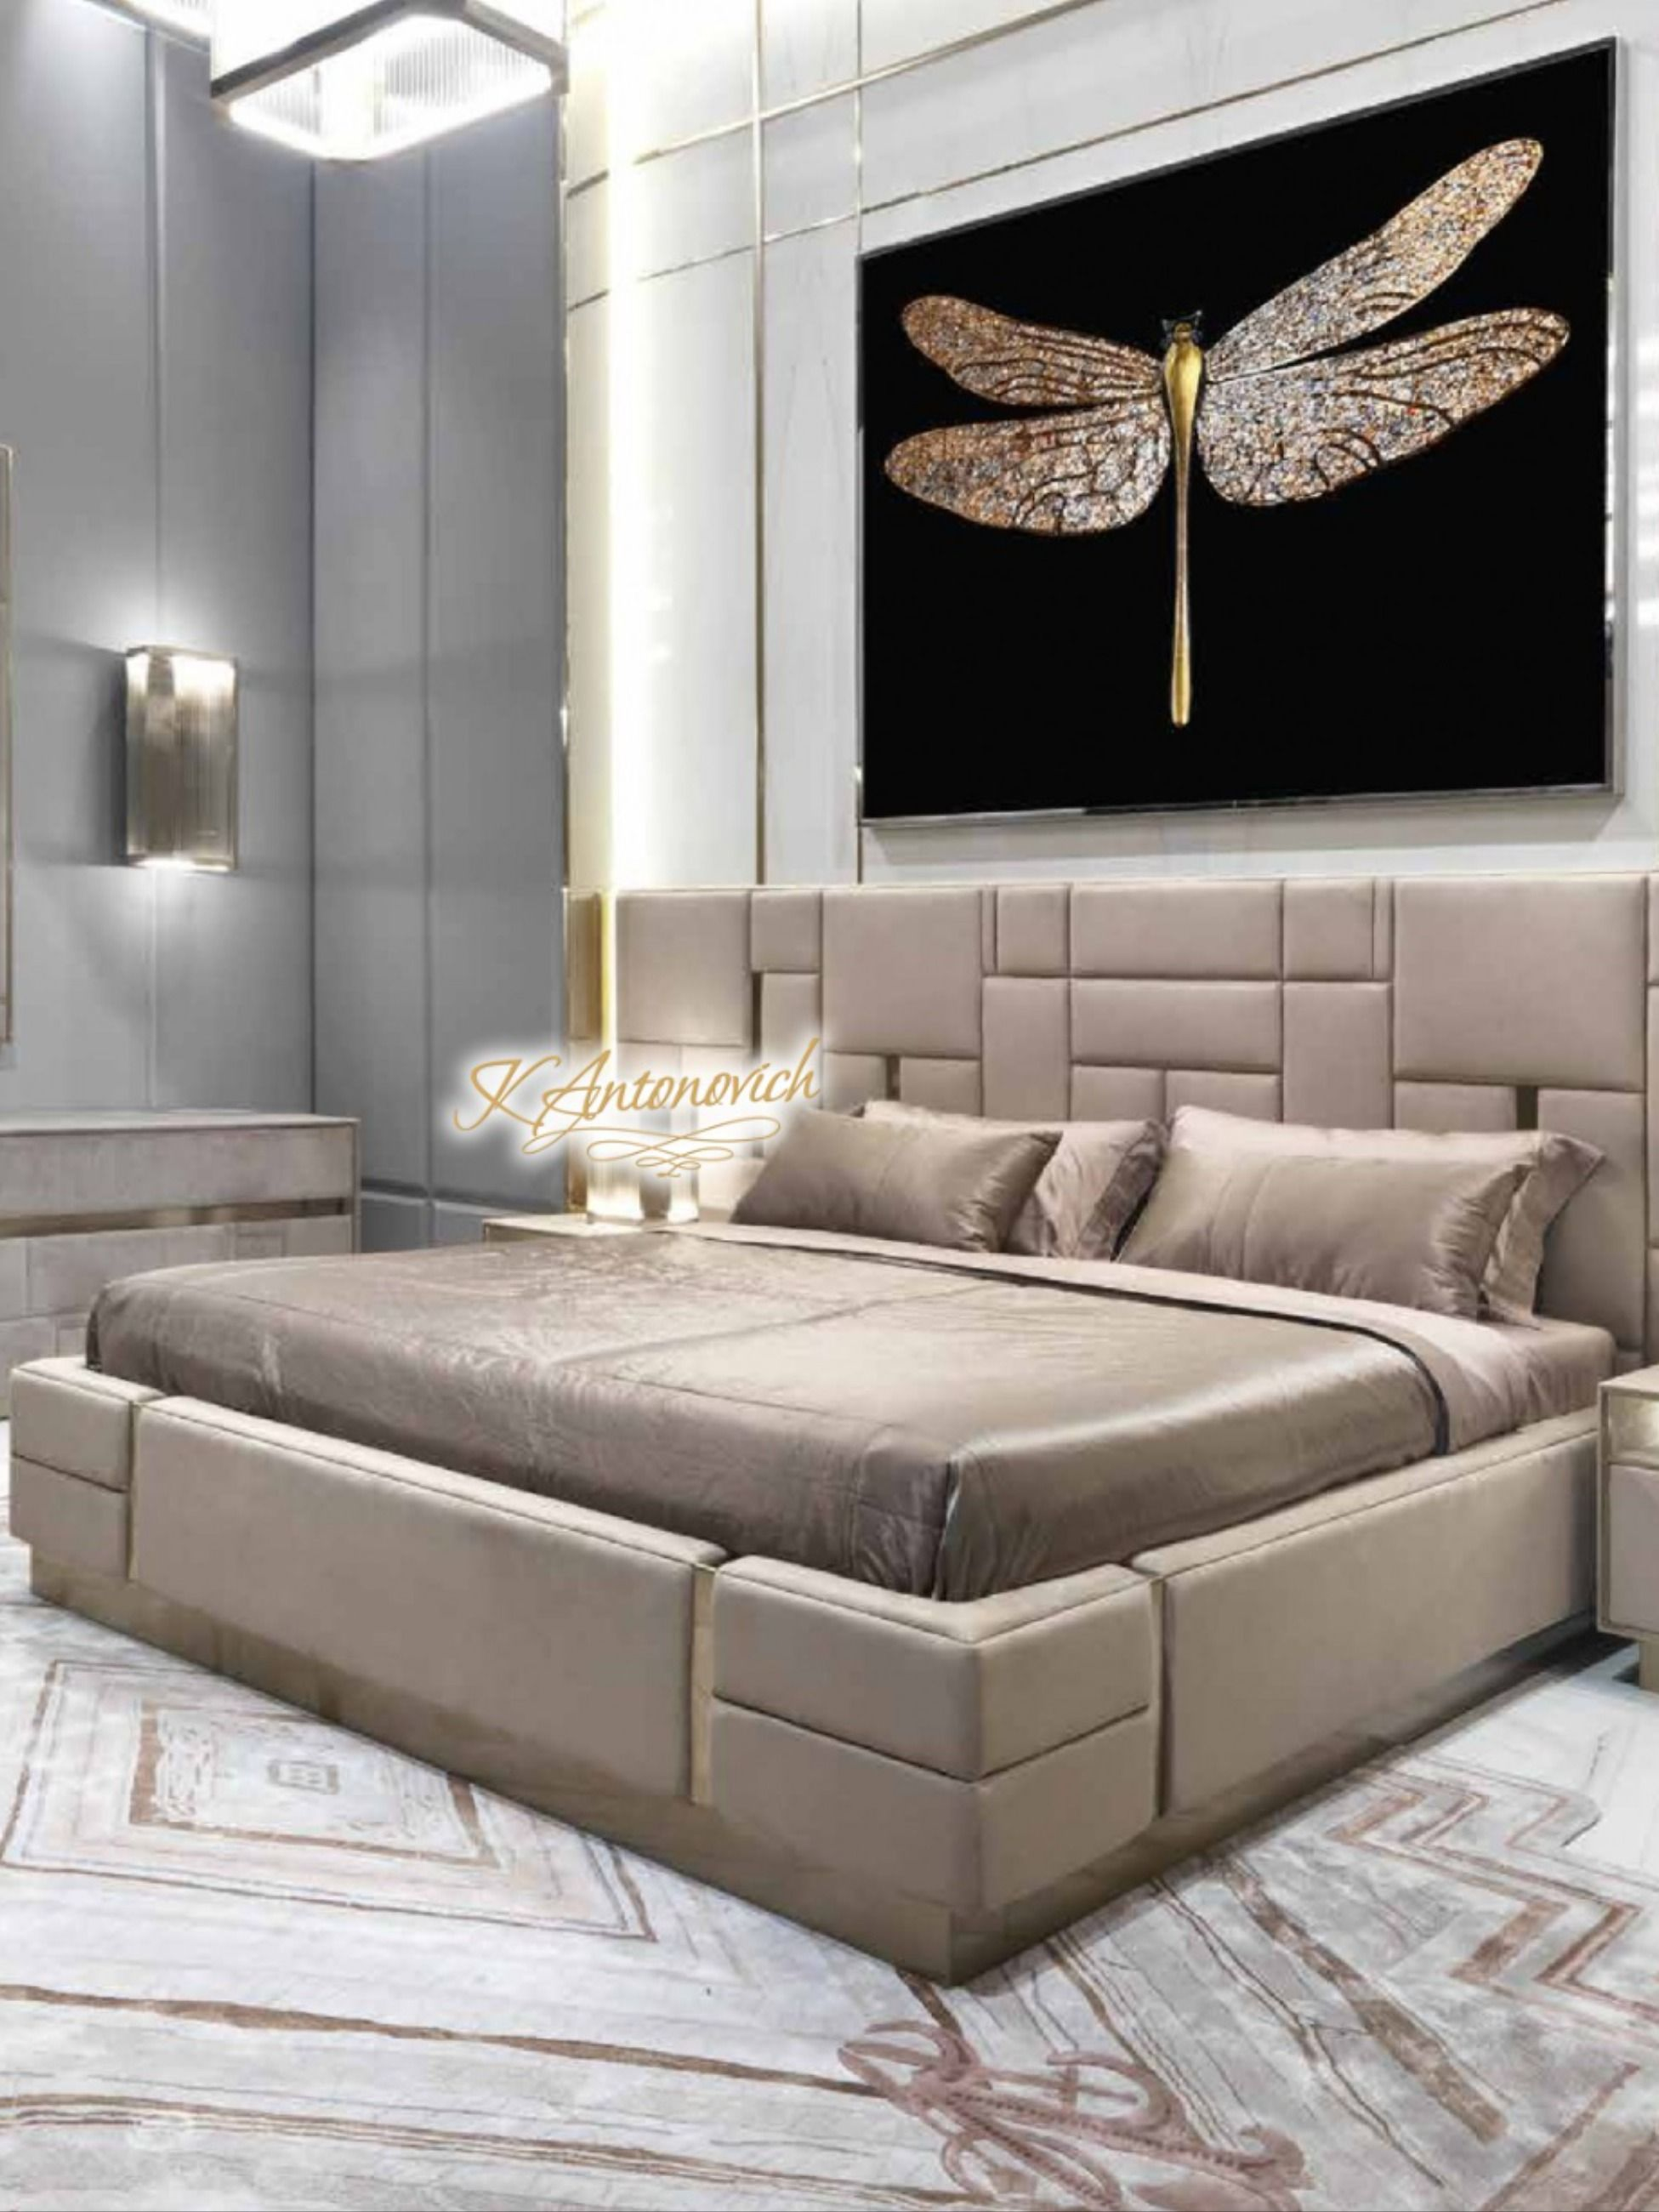 Remarkable Projects An Ebook That Pays Tribute To Modern Interiors In 2021 Bedroom Furniture Design Bedroom Bed Design Bed Design Modern